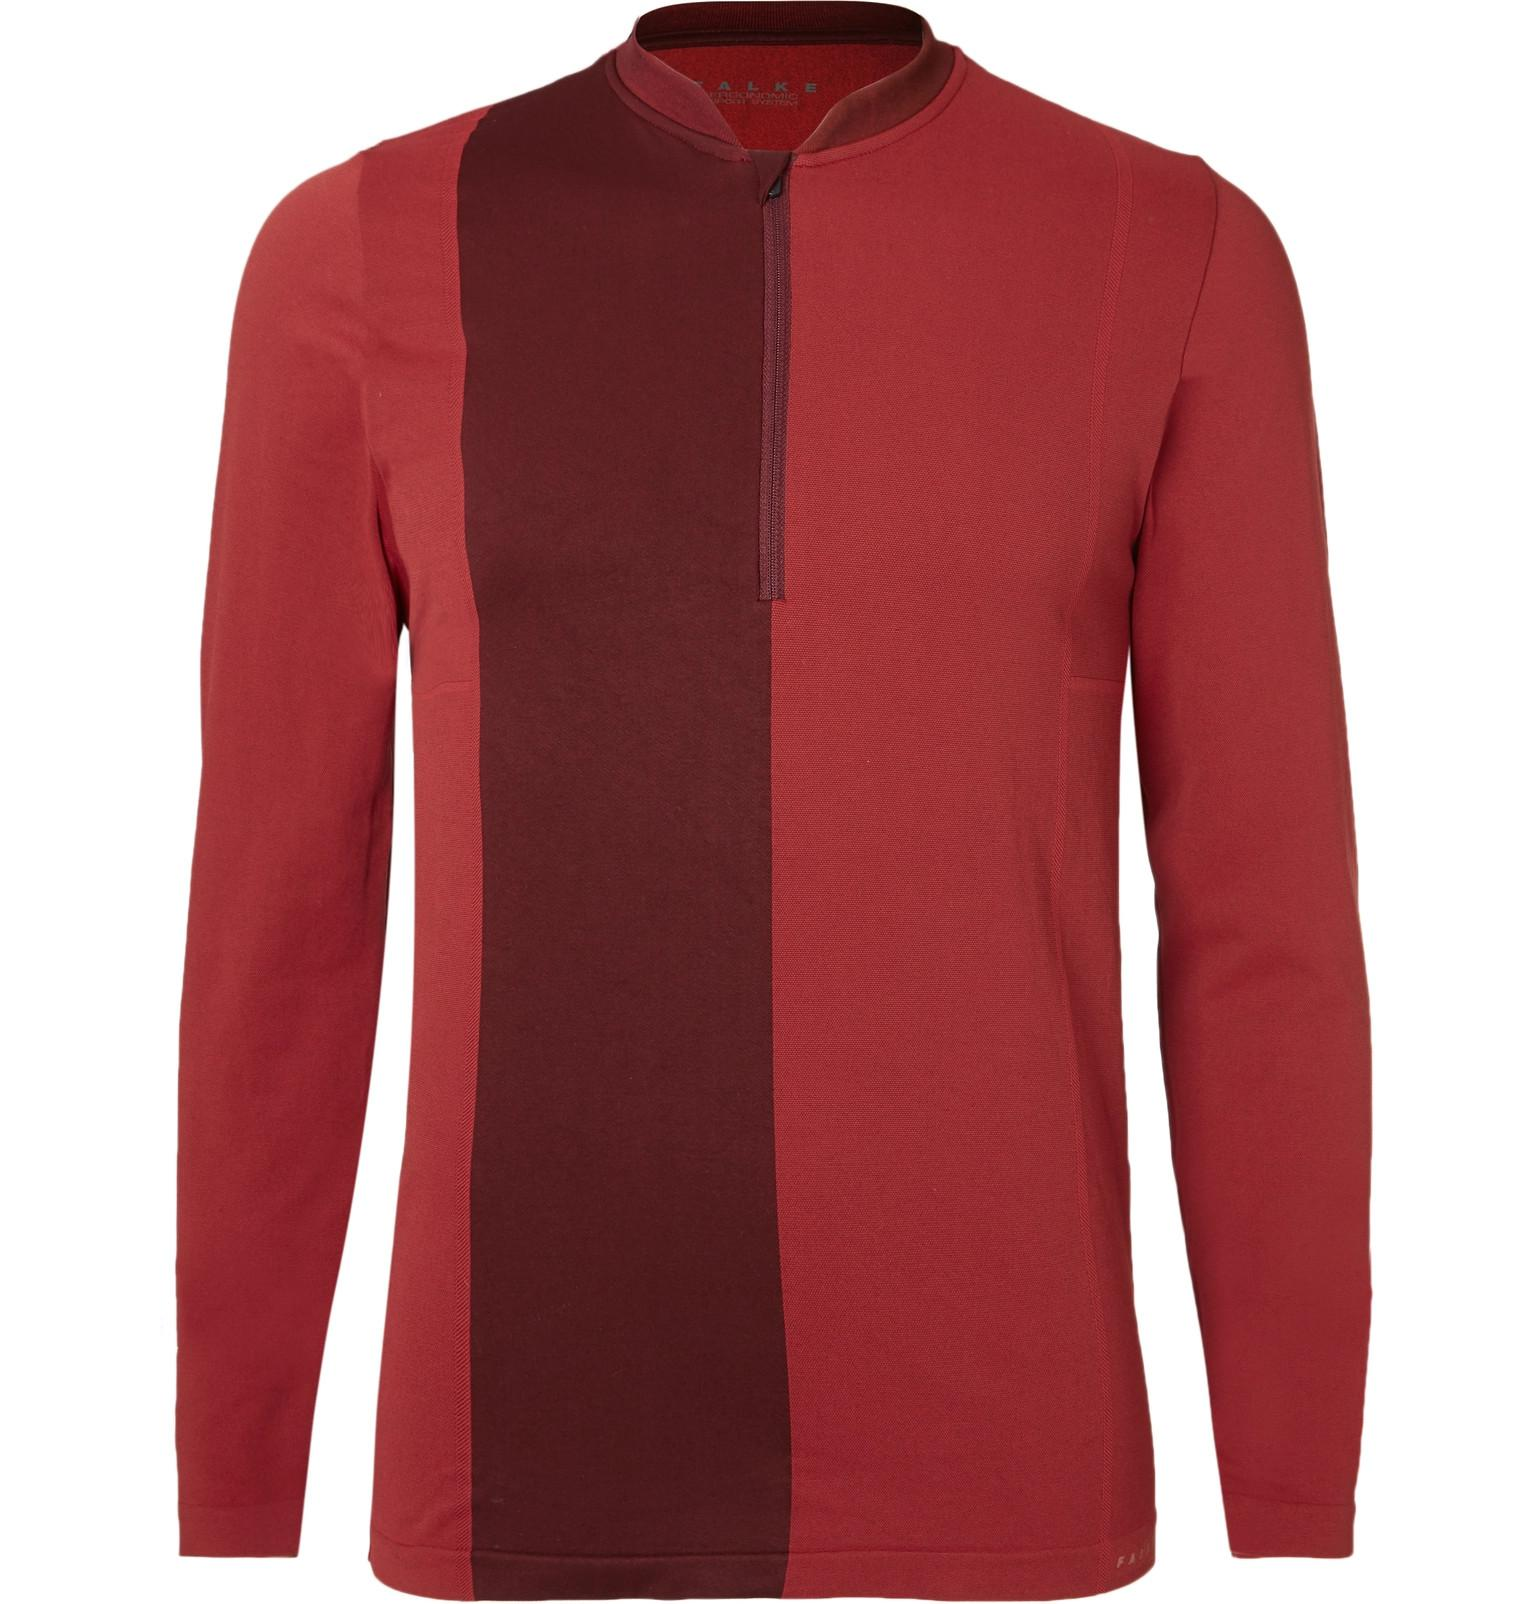 Half-zip long-sleeved T-shirt Falke Manchester Sale Online Extremely Cheap Price ZEStm3XH